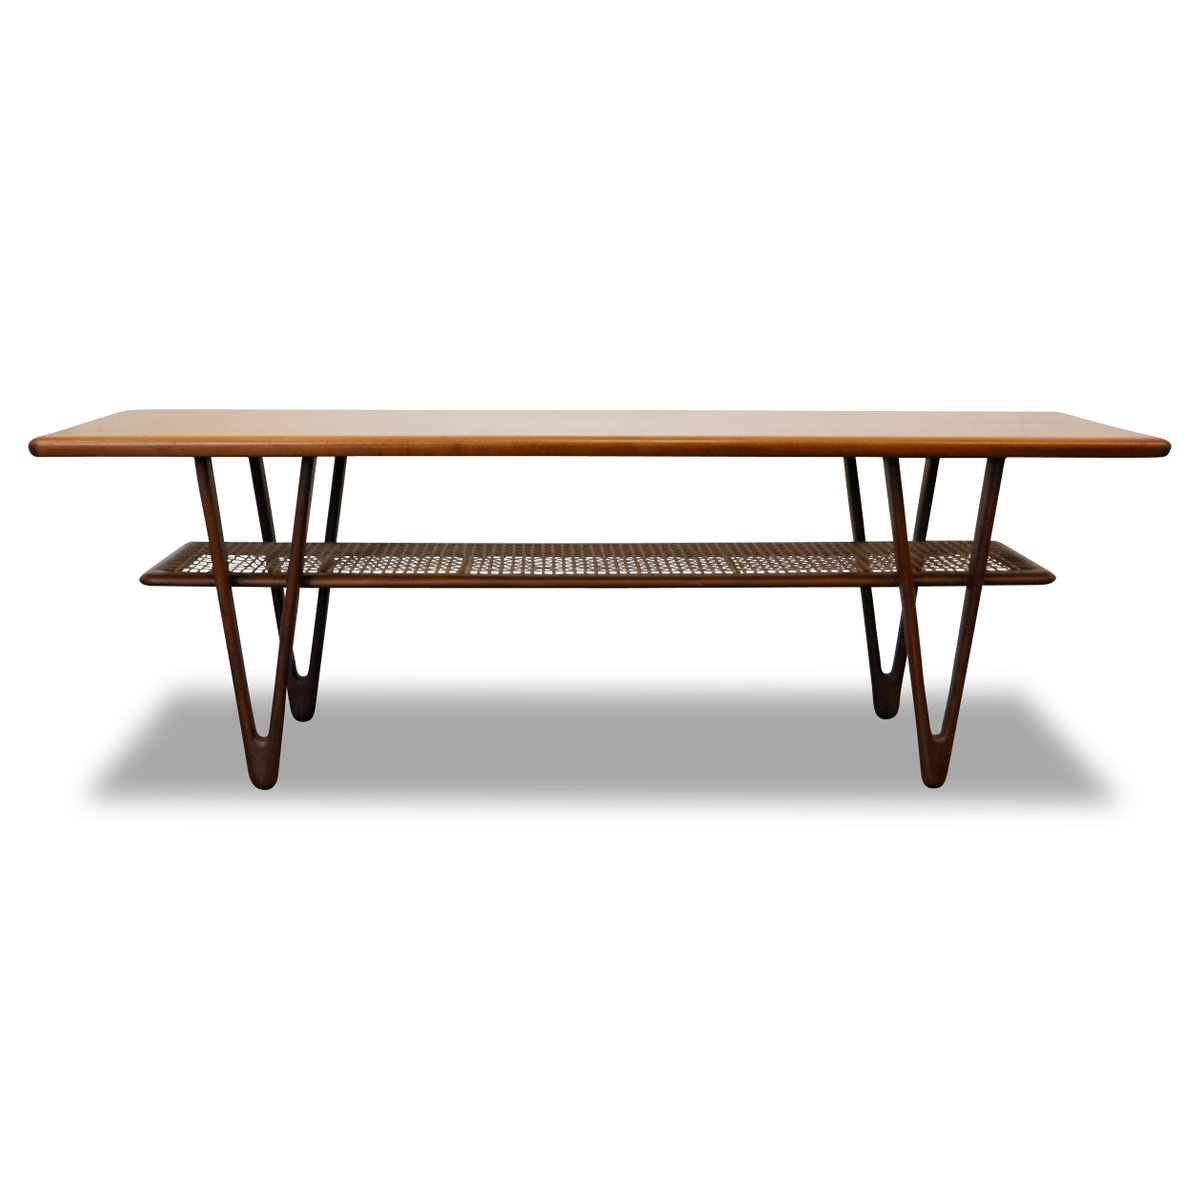 Teak Coffee Table South Africa: Mid-Century Modern Danish Teak Coffee Table, 1950s For